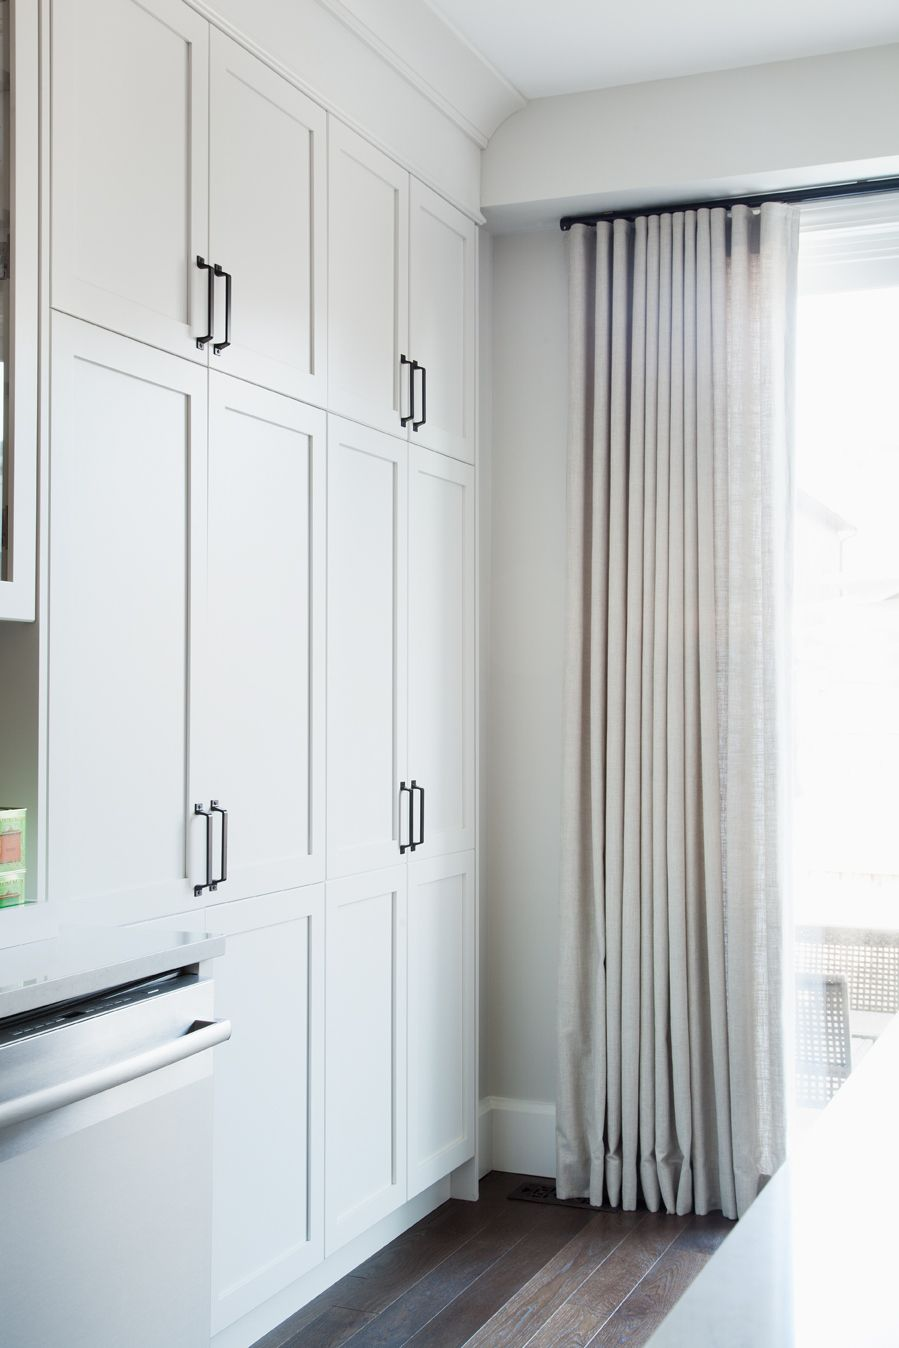 Is crown molding expensive - Using Crown Moulding To Make Cabinets Look More Expensive Vanessa Francis Design